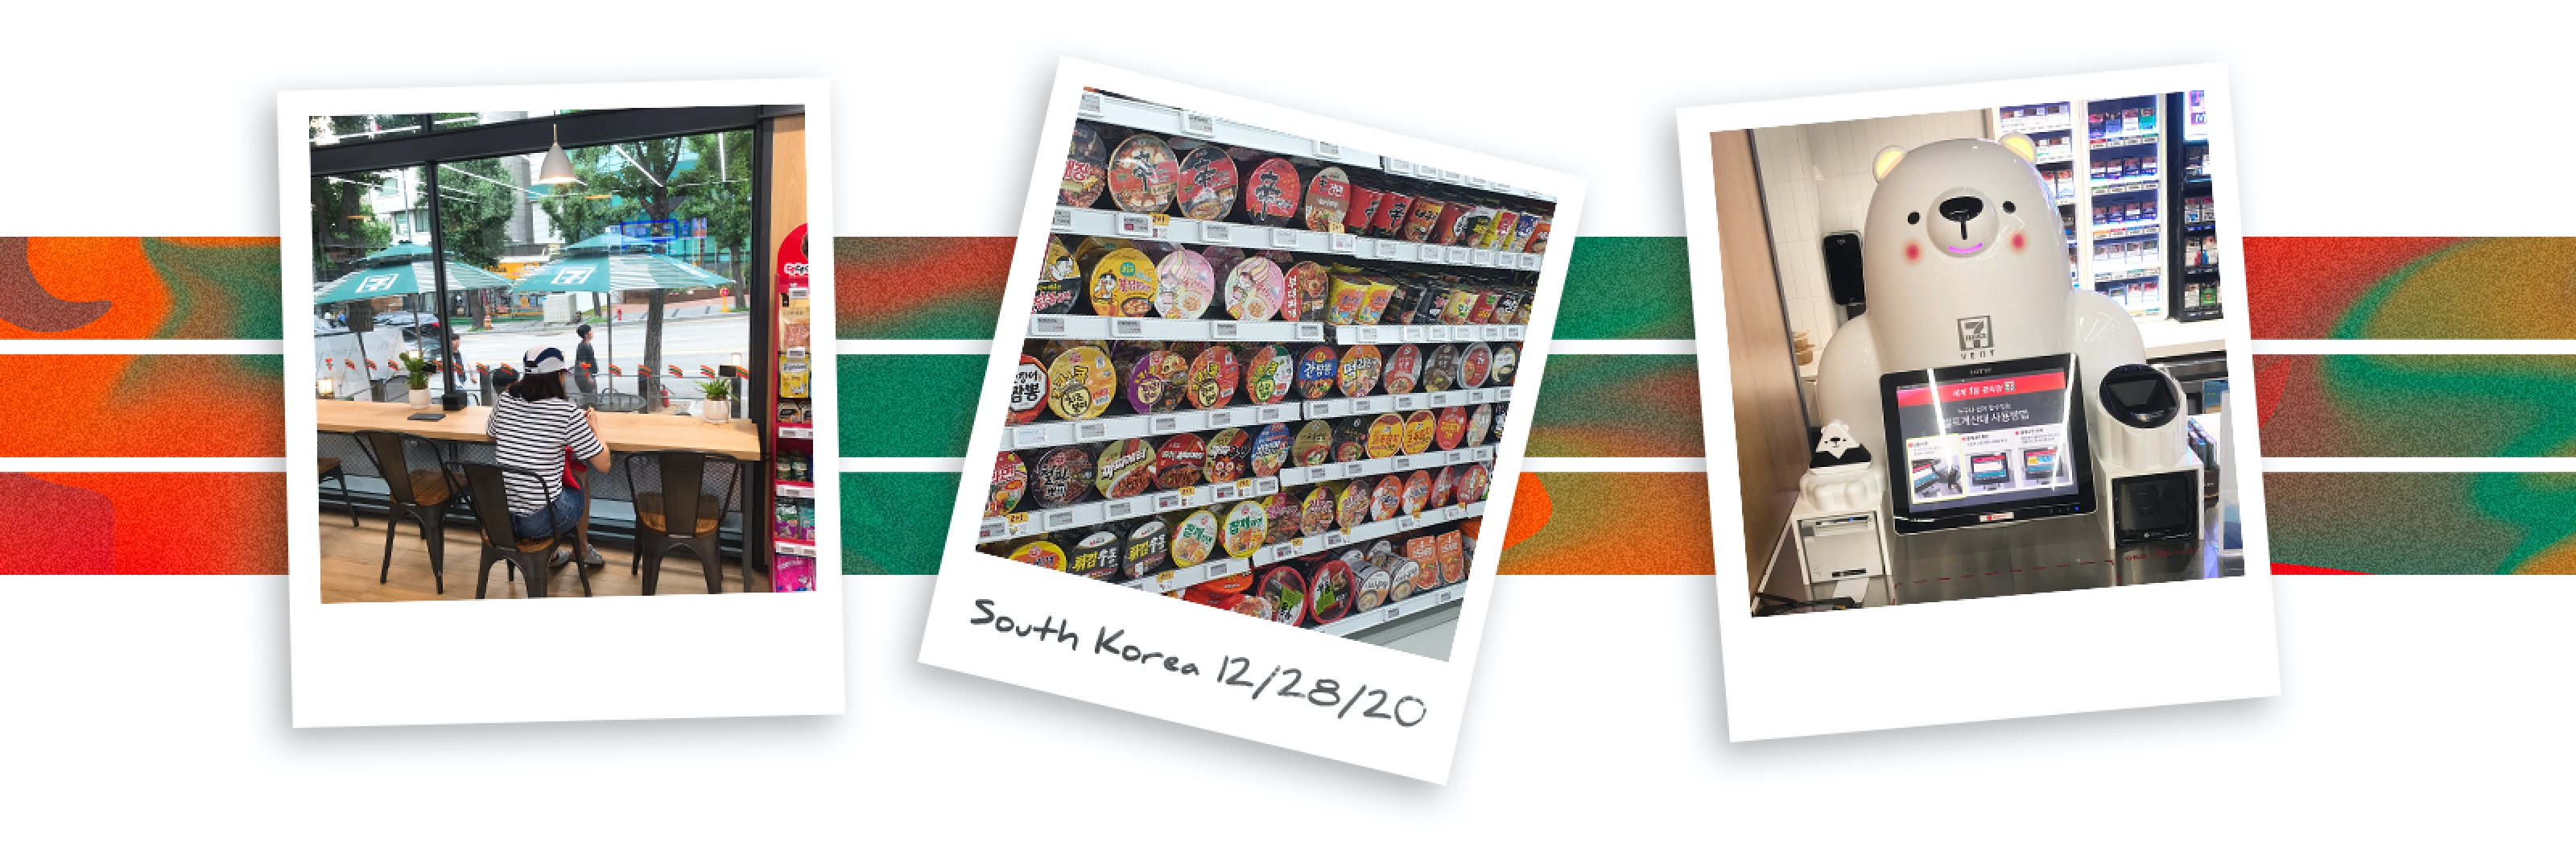 A banner of polaroid images from a 7-Eleven store in South Korea including a customer at in-store cafe seating, a noodle bowl aisle, and a cute polar bear self checkout station.